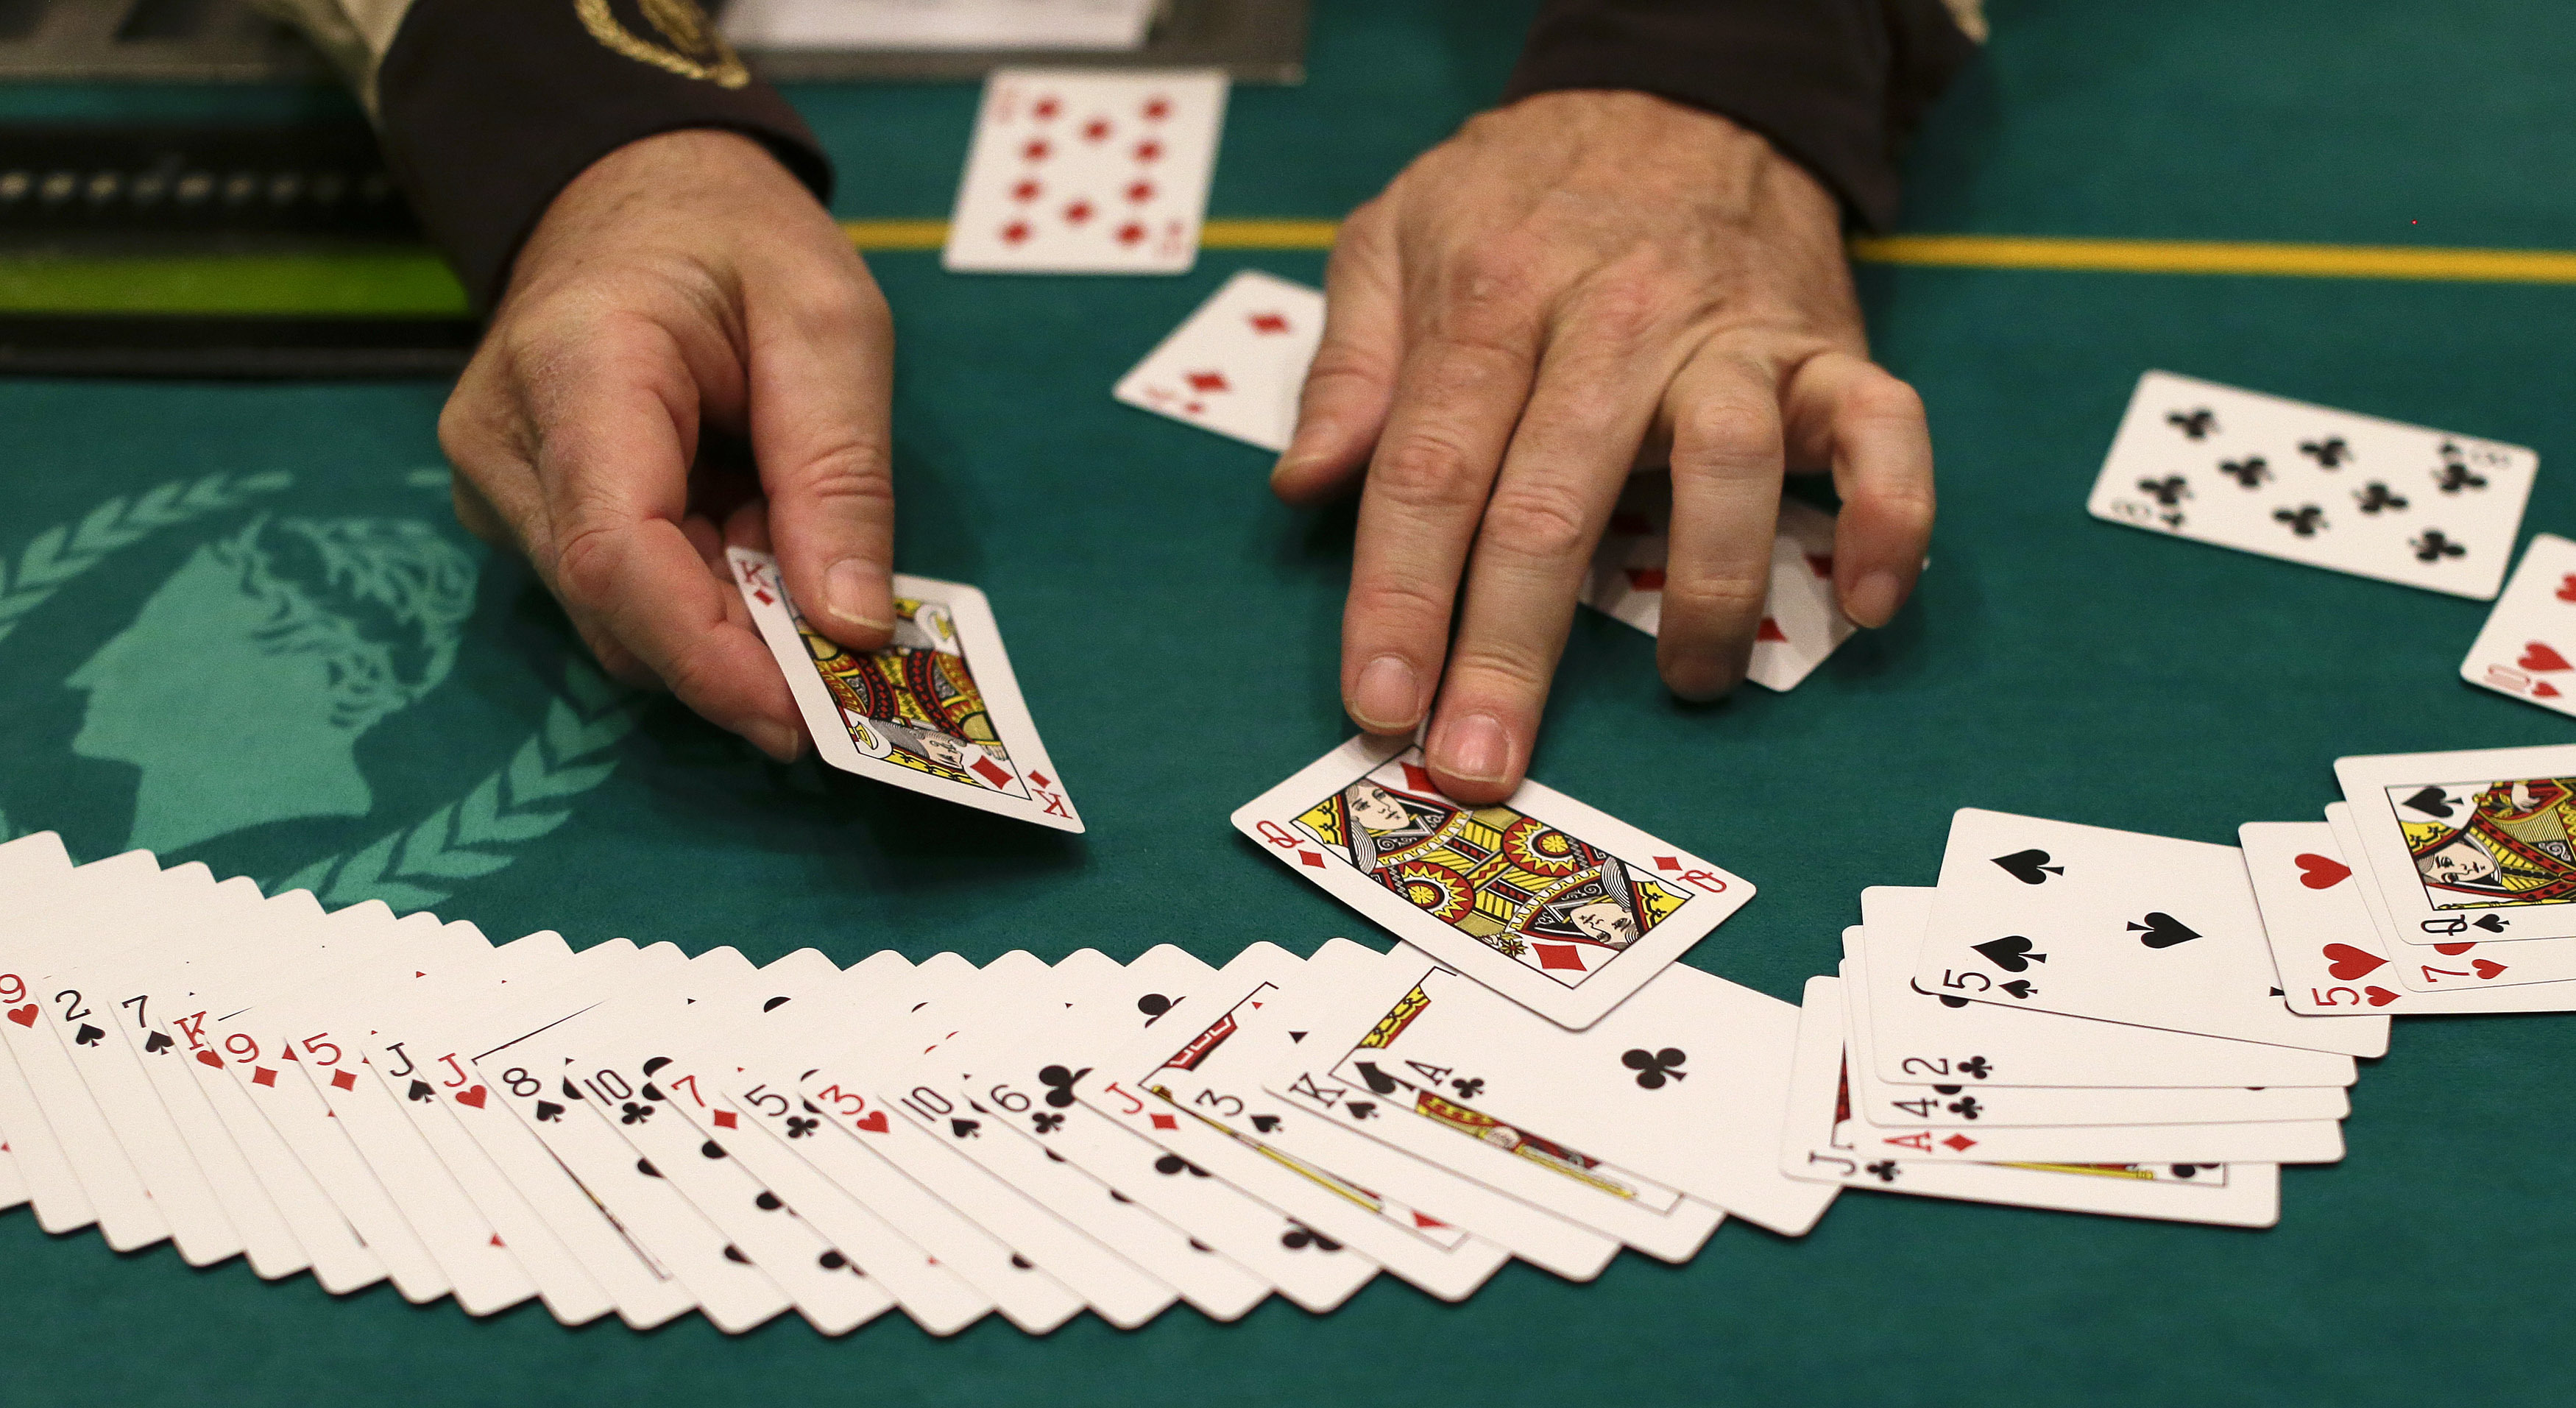 A dealer resets a deck of cards during a break in poker play at Caesar's Palace in Las Vegas in 2013.